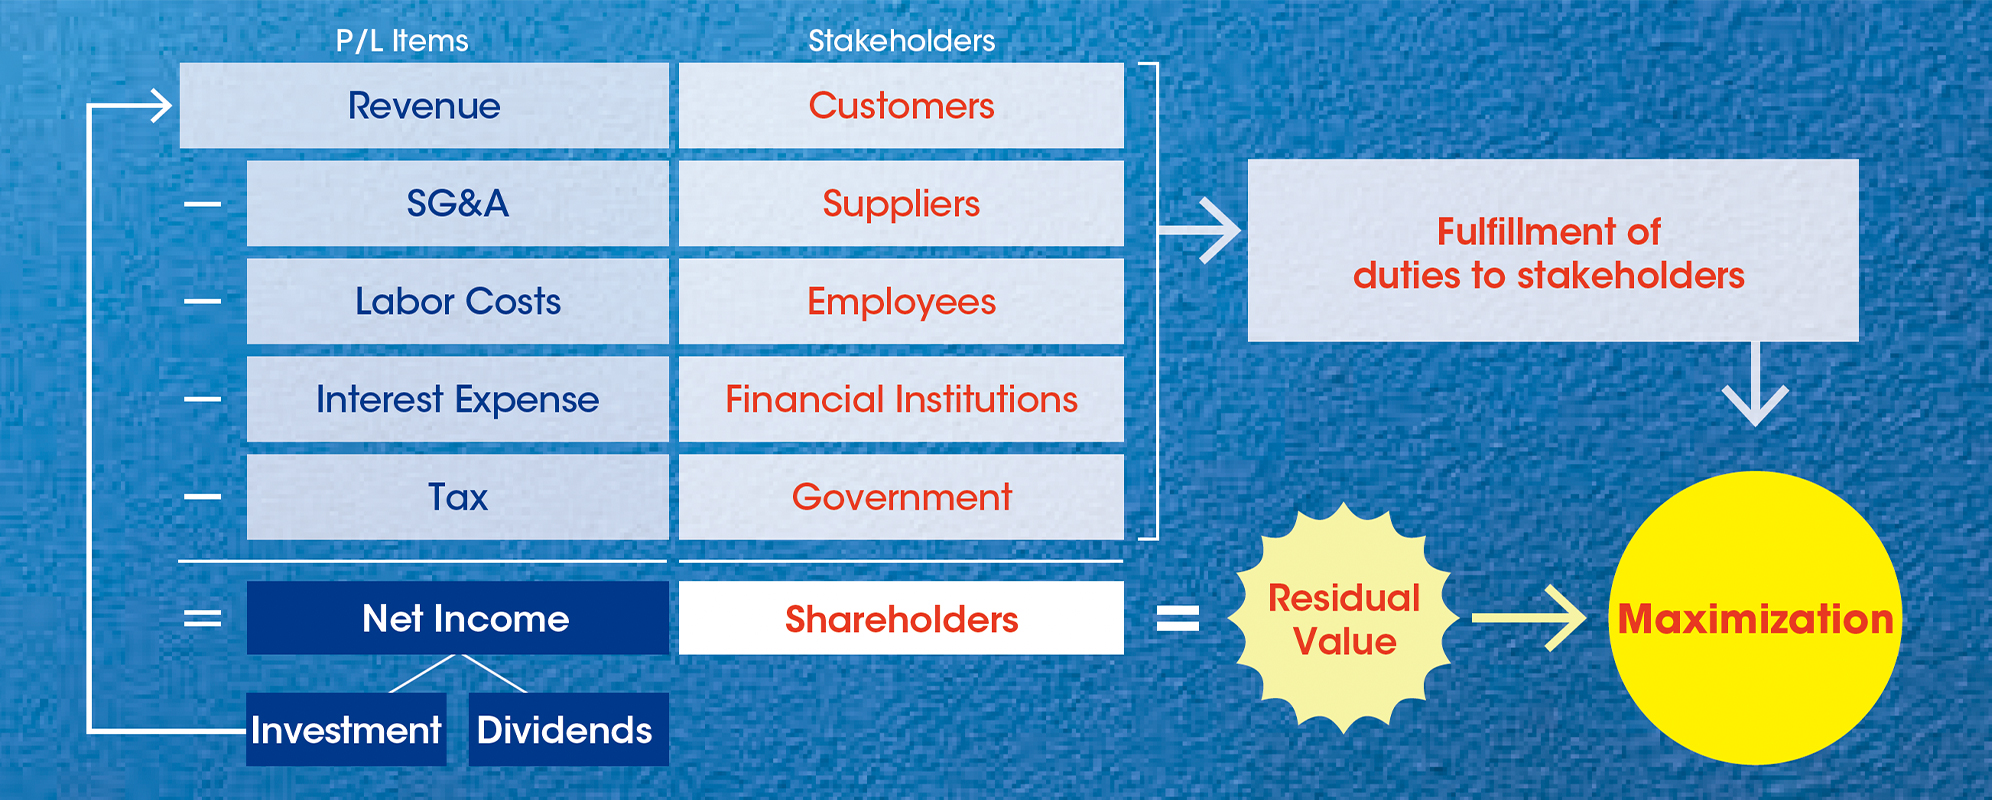 Maximization of shareholder value as a mission, creating wealth